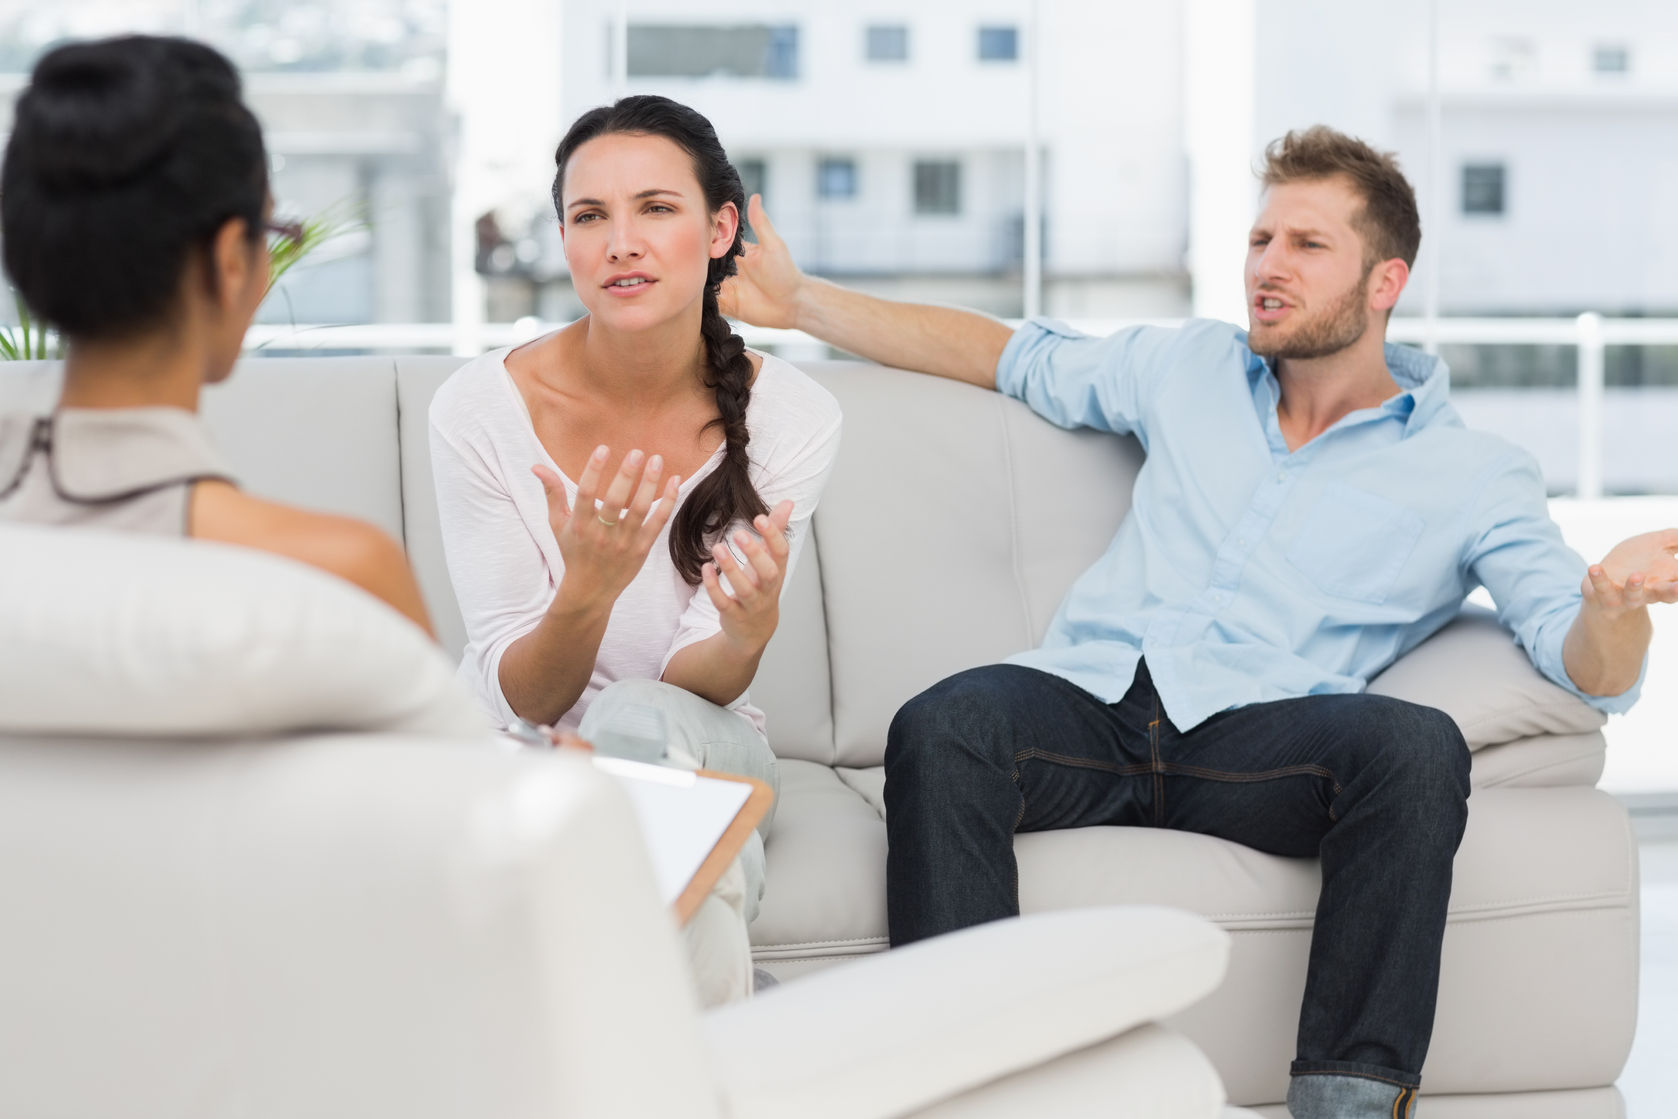 Man explaining to counselor while wife sits pursing her lips